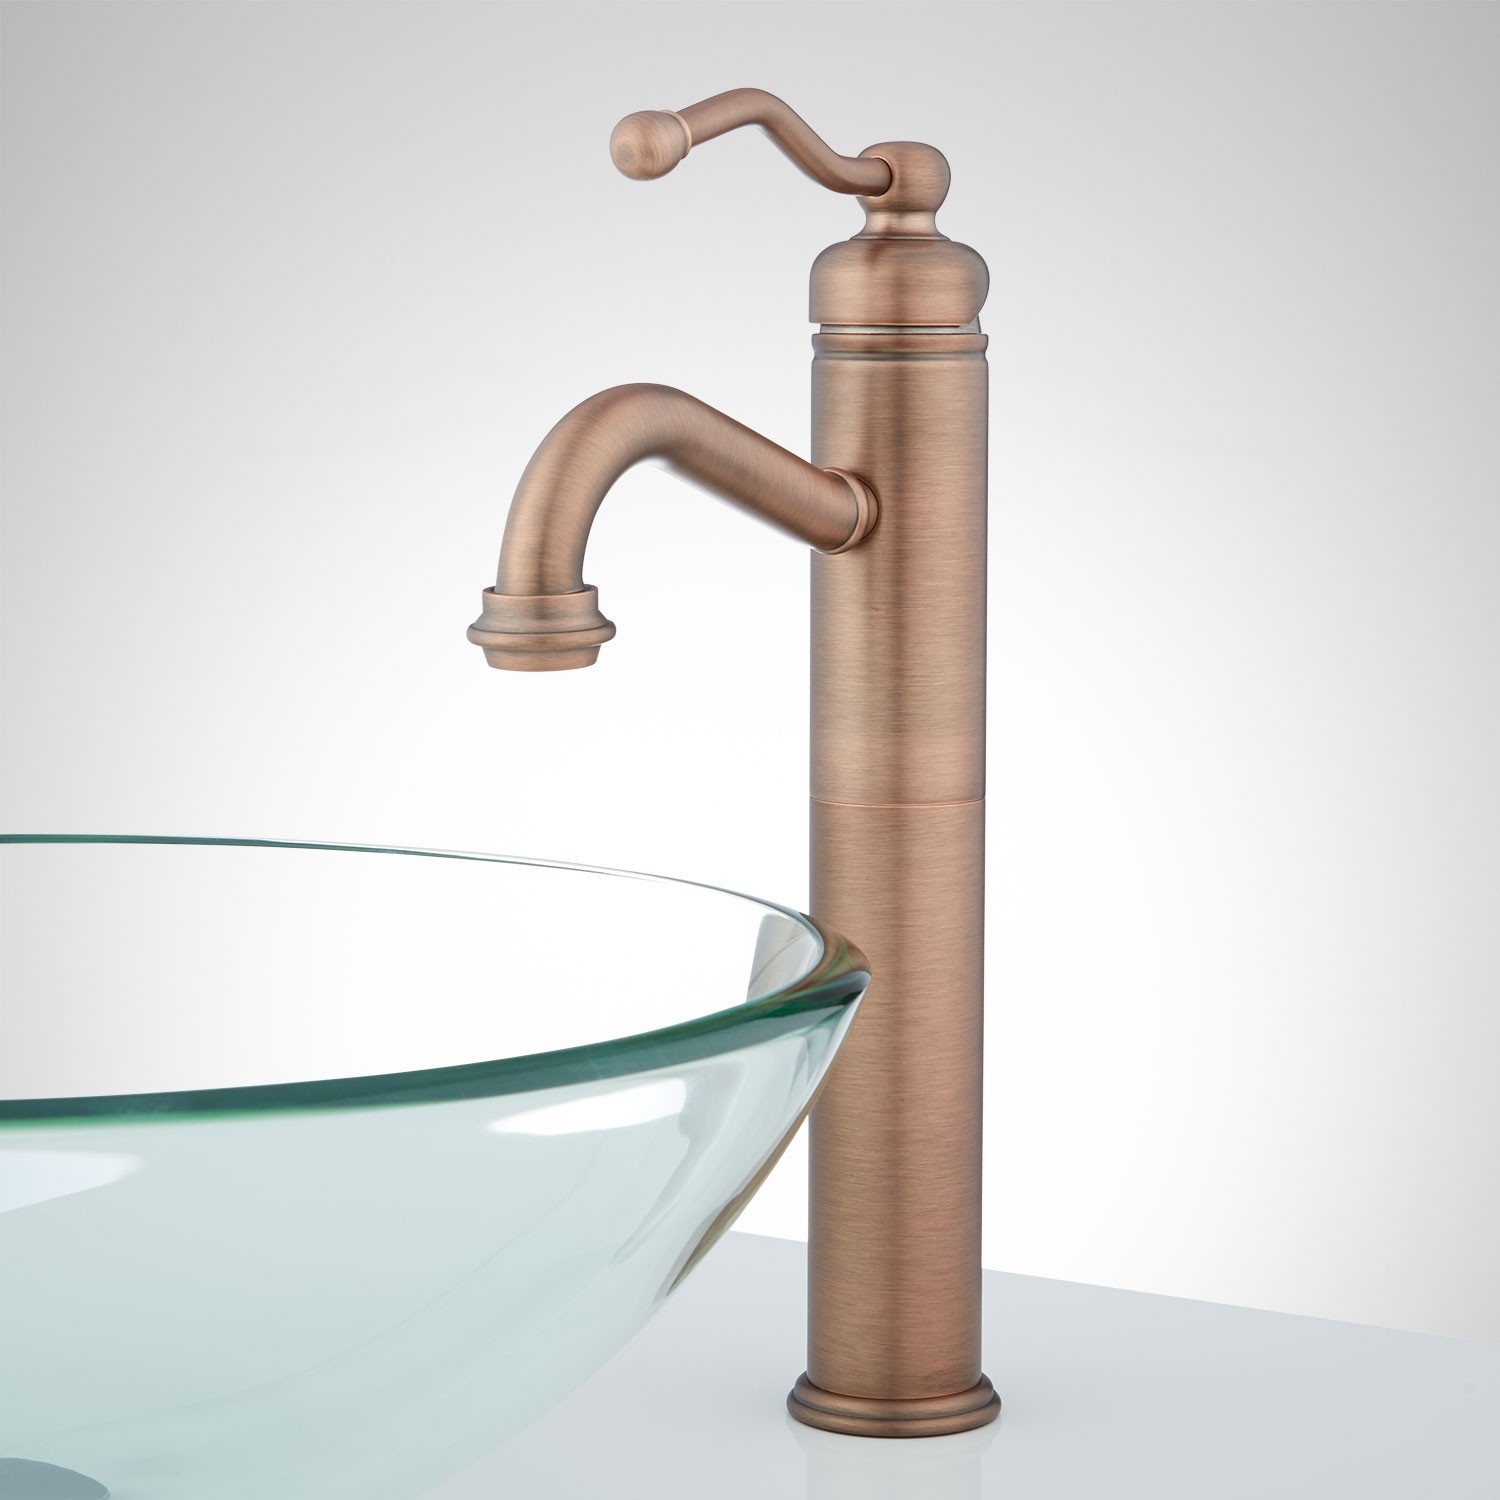 Ideas, faucets for vessel sinks bronze faucets for vessel sinks bronze leta single hole vessel faucet with pop up drain bathroom 1500 x 1500  .